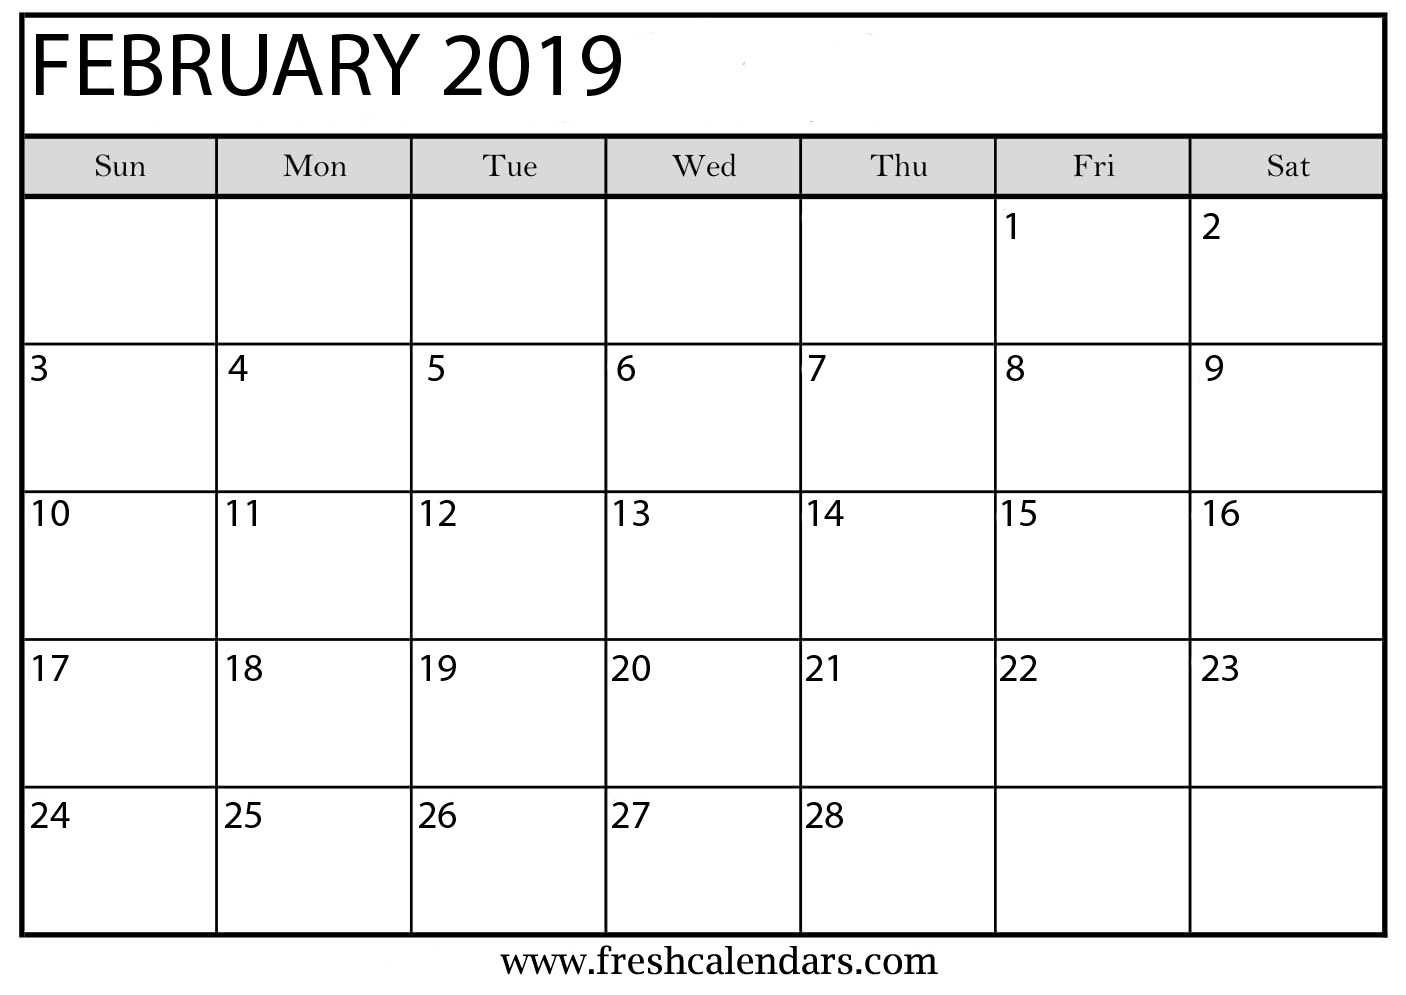 Feb 2019 Calendar Template With Holidays - Free Printable Calendar throughout Blank Calendar Print-Outs Fill In With Holidays